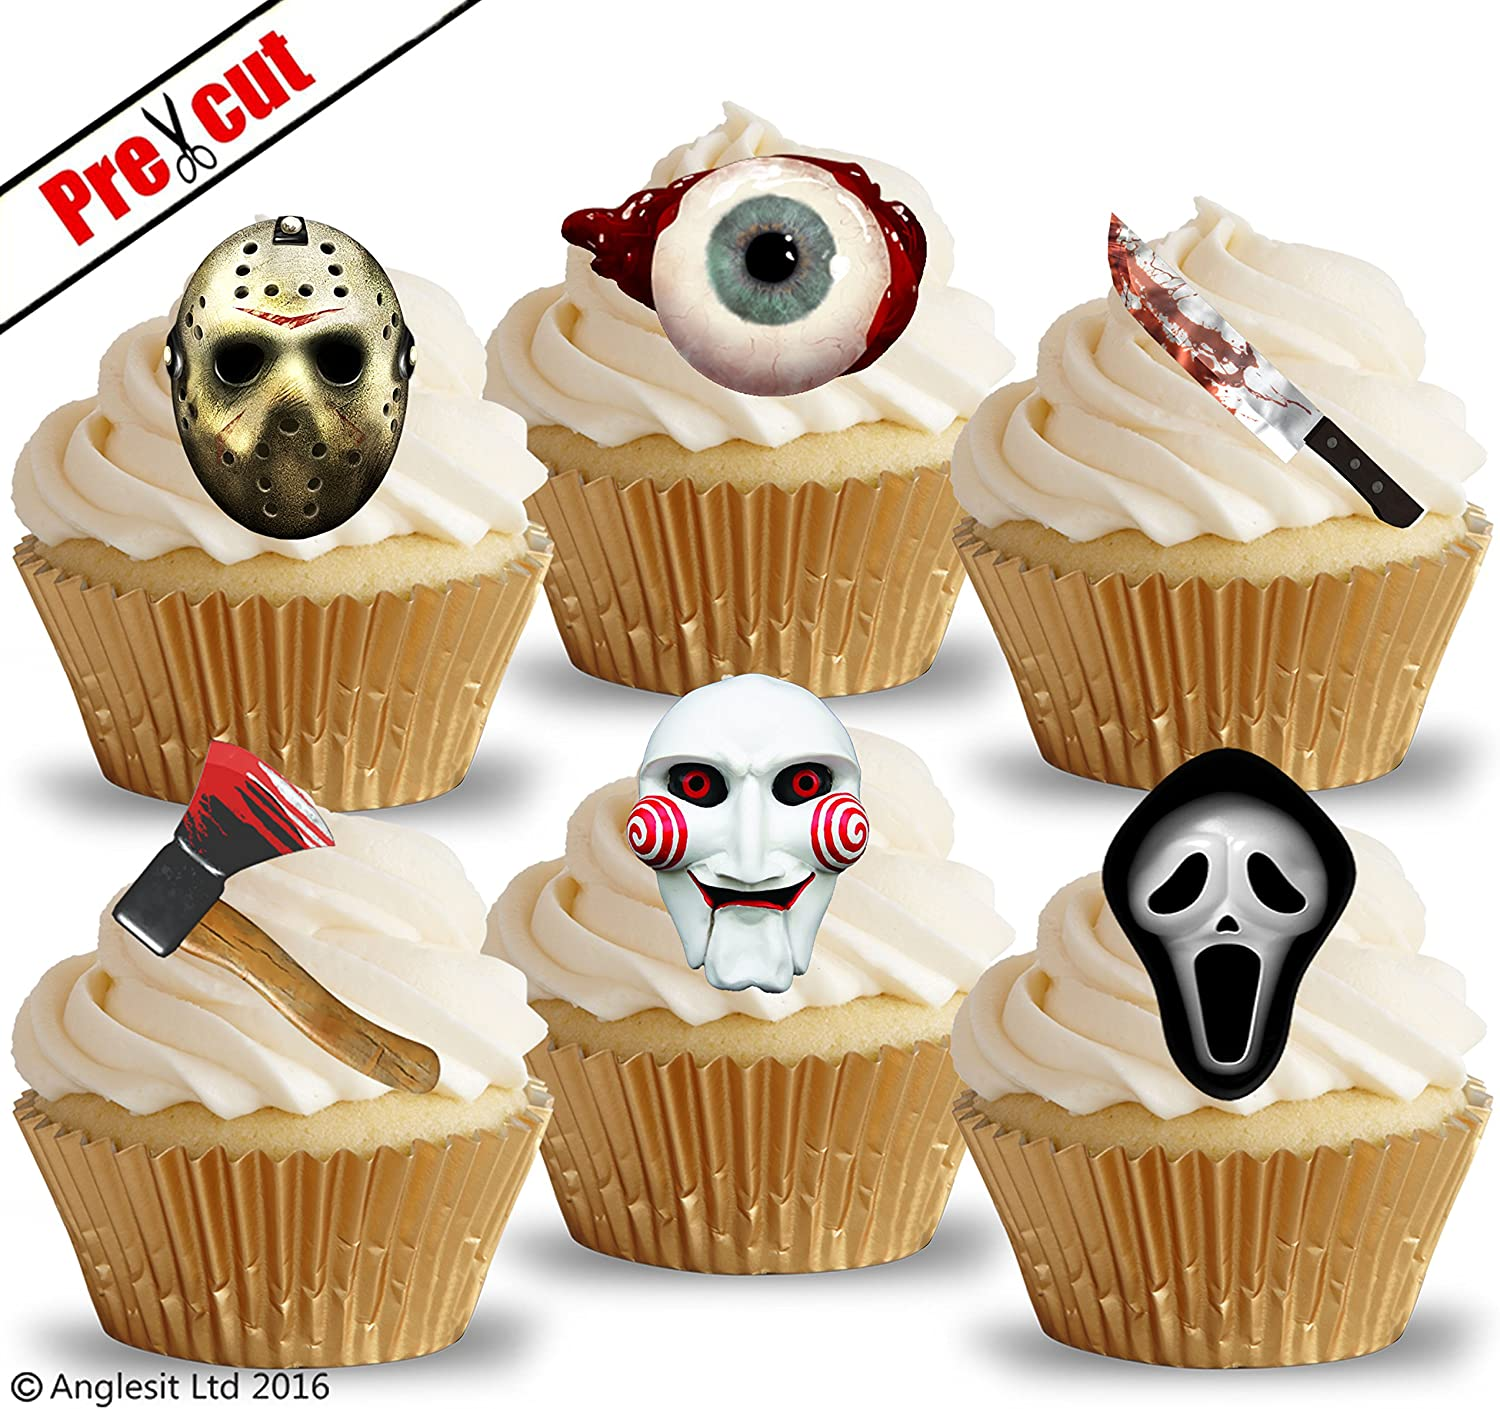 PRE CUT SCARY HORROR MASKS & OBJECTS EDIBLE RICE WAFER PAPER CUPCAKE CAKE TOPPERS HALLOWEEN GOTHIC BIRTHDAY PARTY DECORATIONS